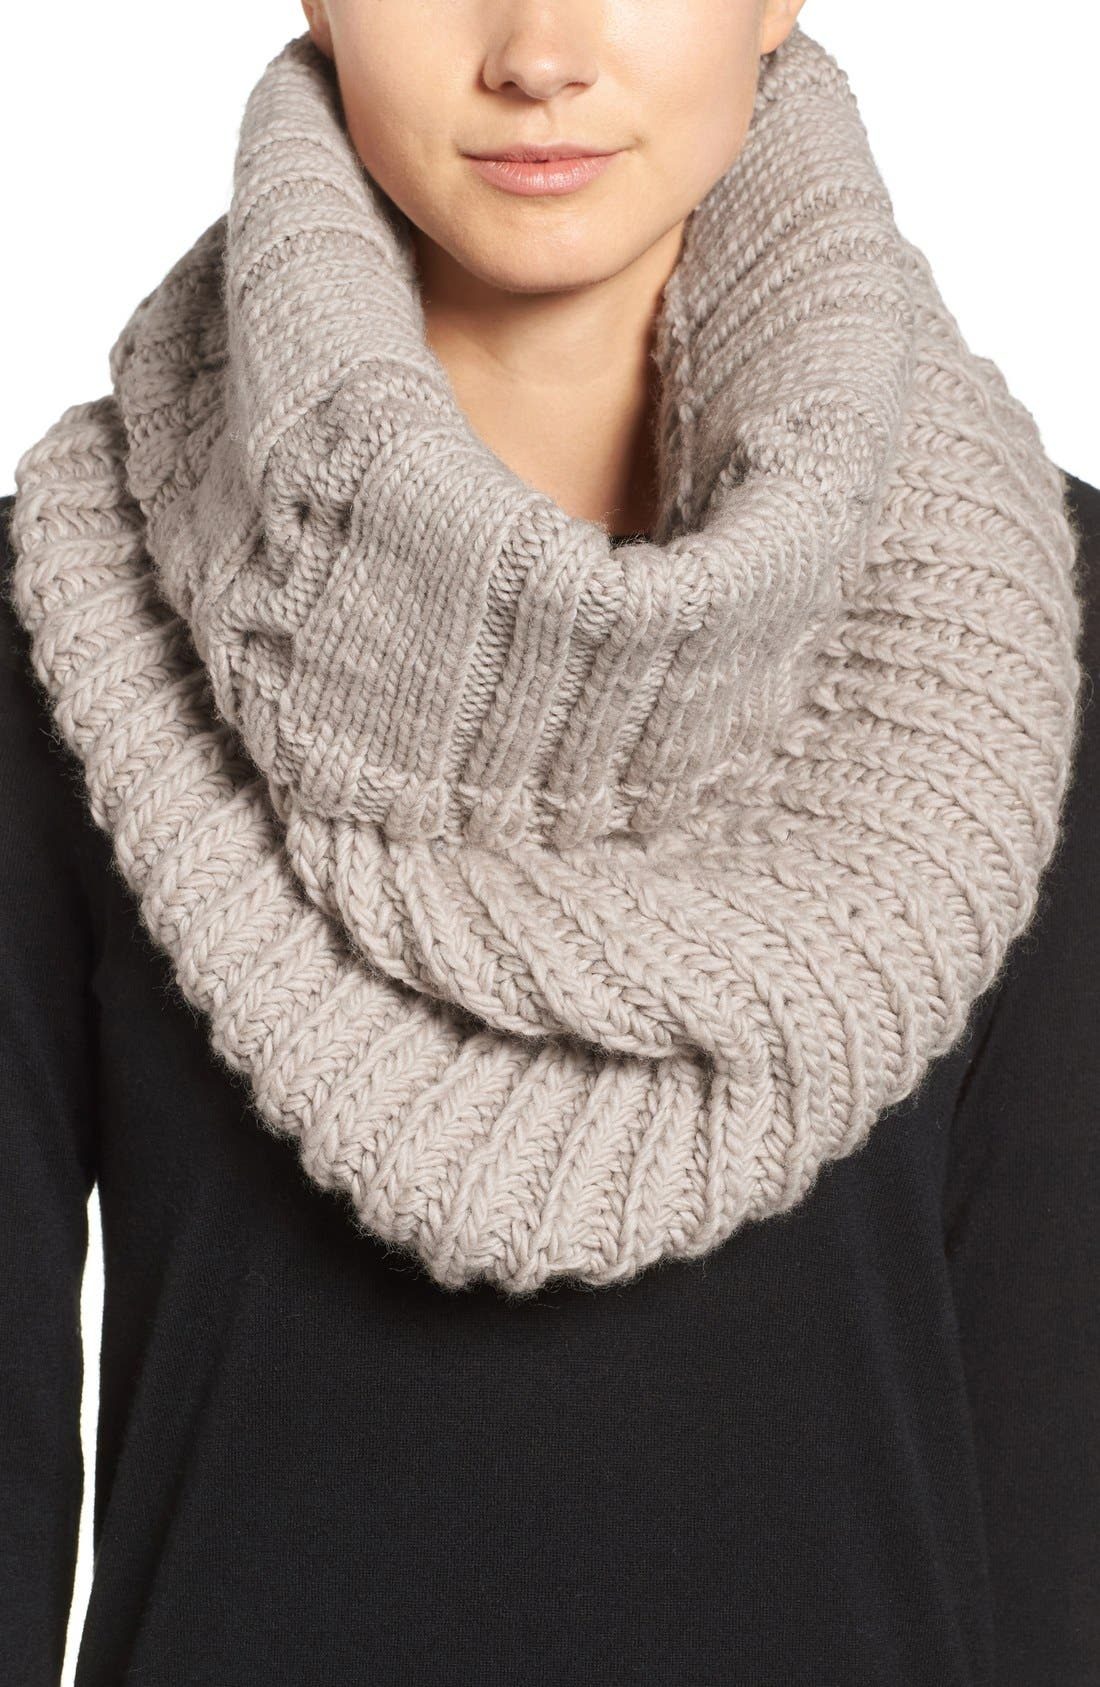 Alternate Image 1 Selected - Nirvanna Designs Oversize Cable Knit Wool Infinity Scarf